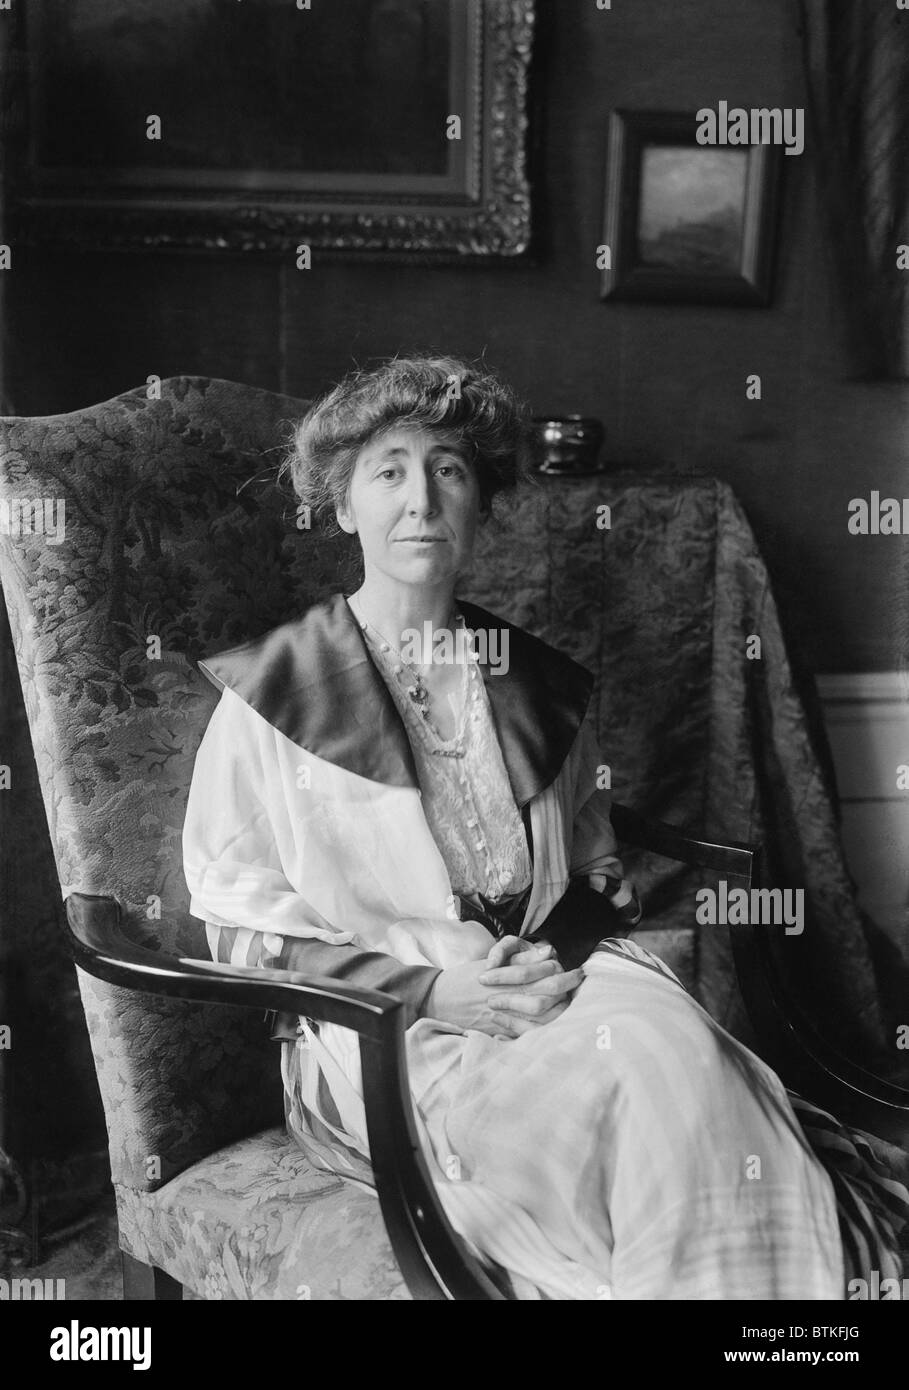 jeannette black and white stock photos images alamy jeannette rankin 1880 1973 served two non consecutive terms in the